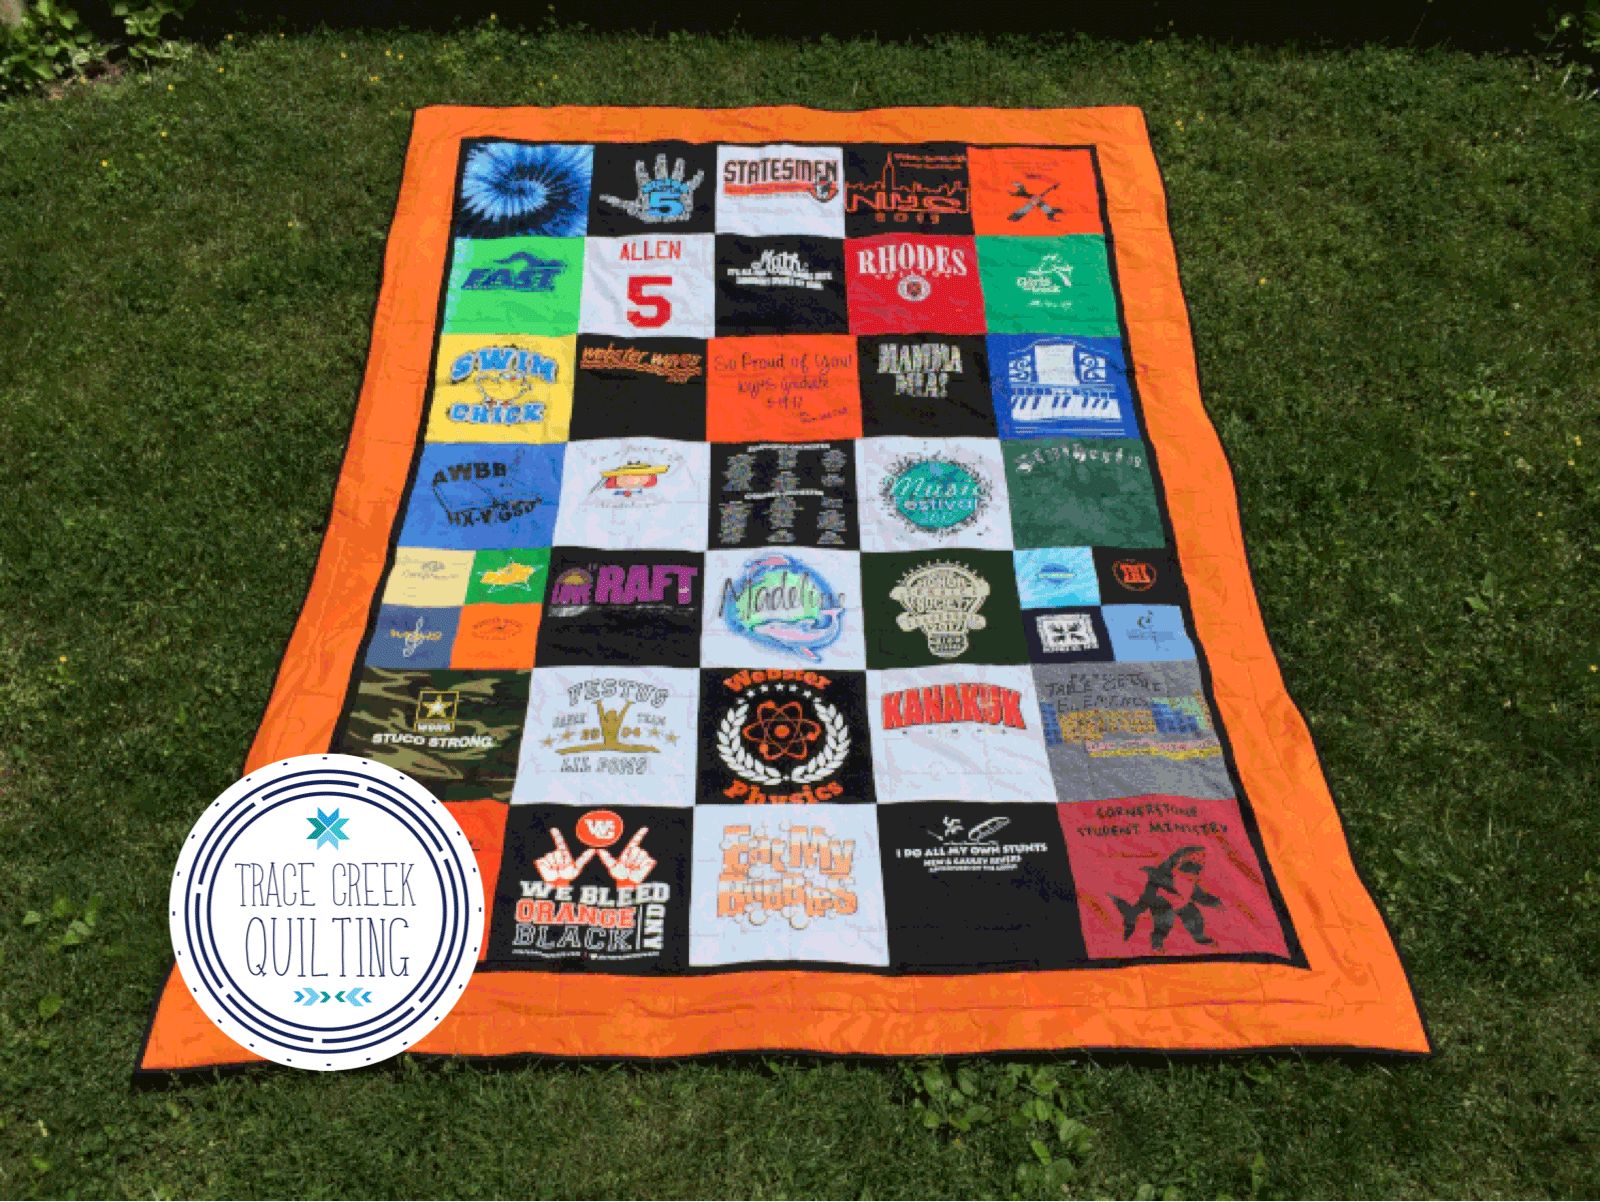 TShirt-Quilt-Trace-Creek-Quilting-027.png